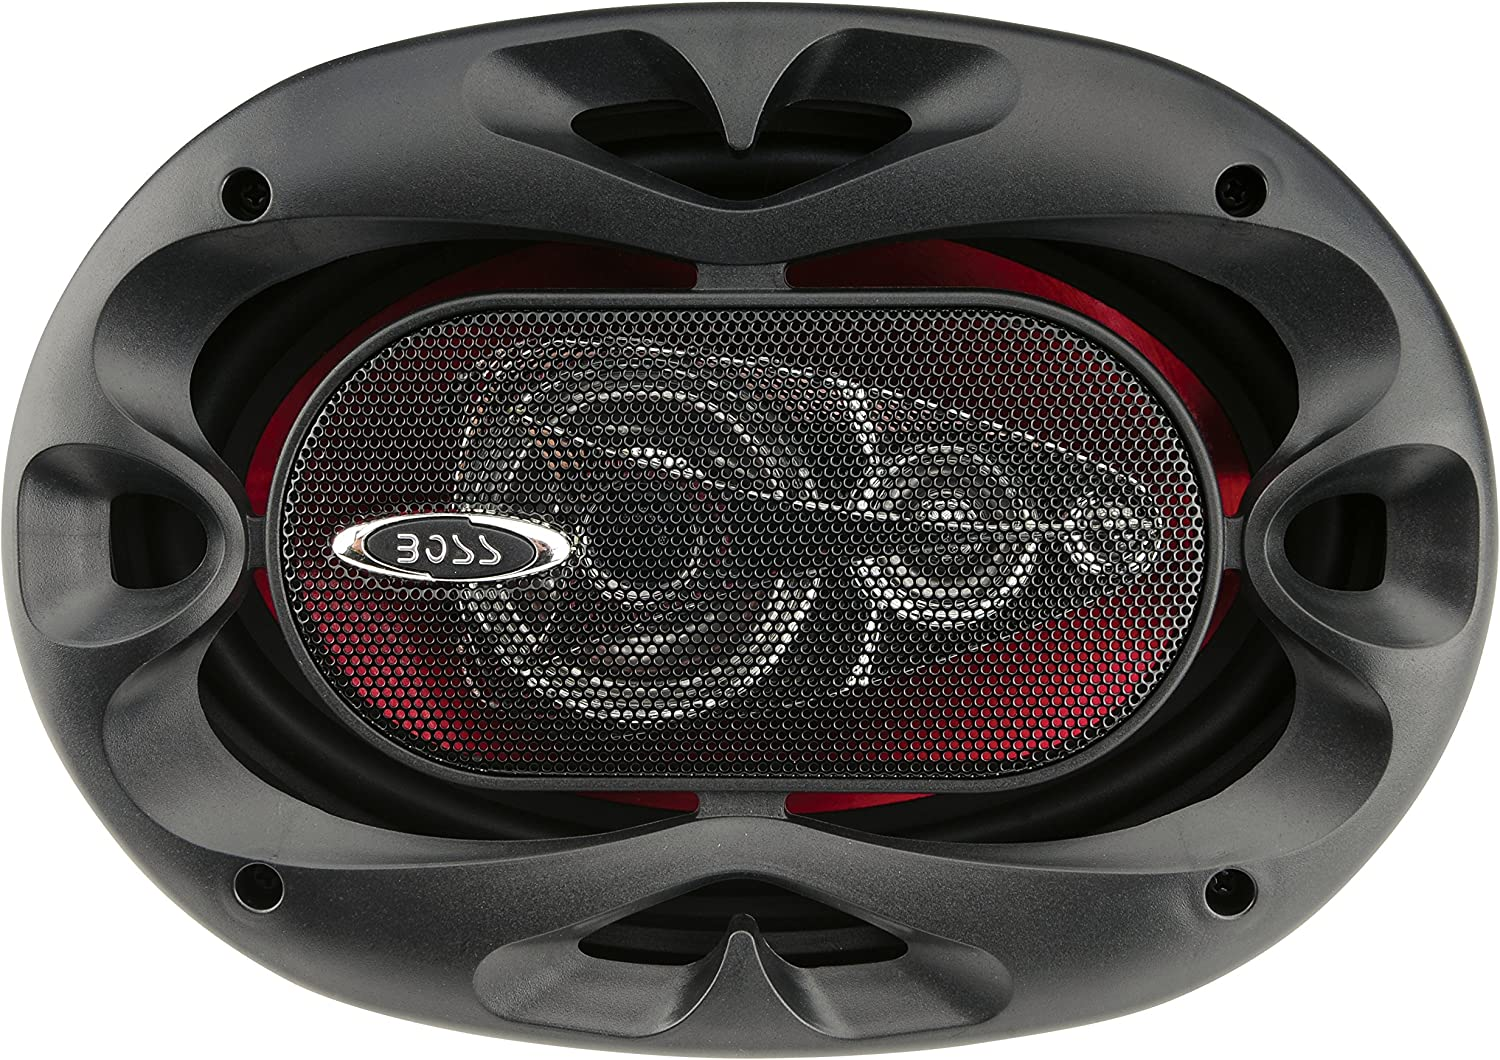 BOSS Audio Systems CH6940 Car Speakers - 500 Watts Of Power Per Pair And 250 Watts Each, 6 x 9 Inch , Full Range, 4 Way, Sold in Pairs, Easy Mounting